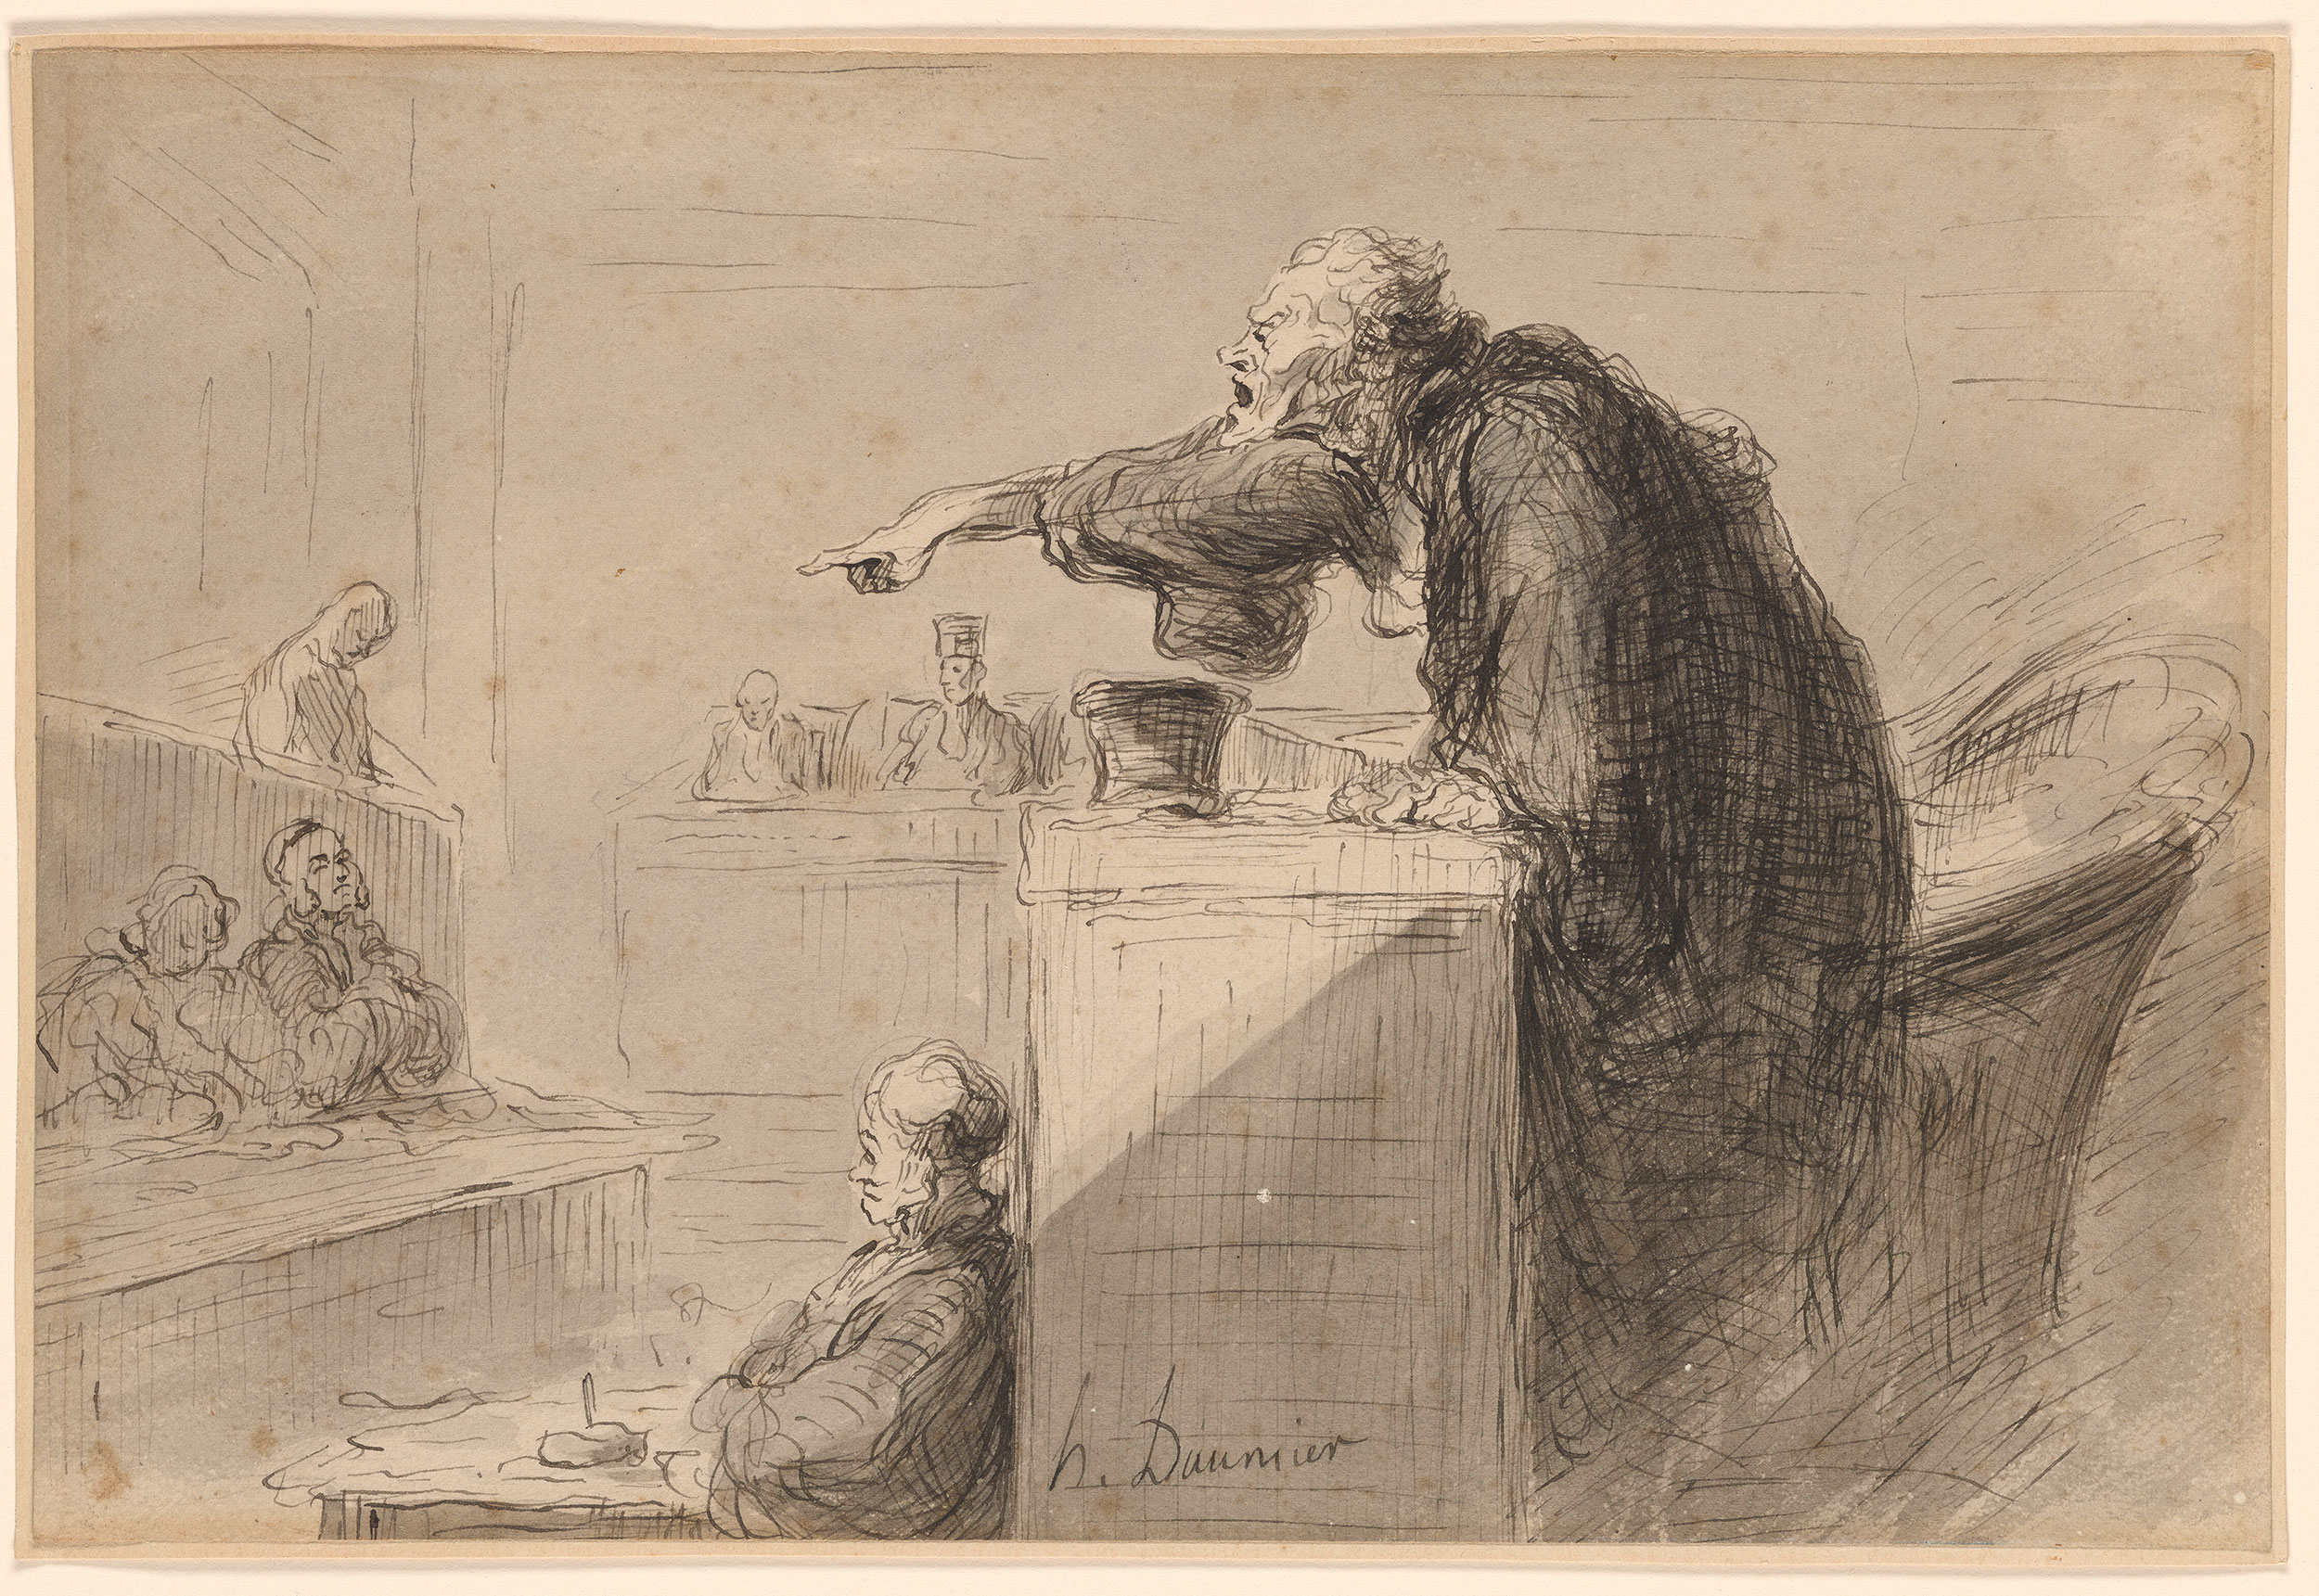 Honor Daumier  Accusation  Drawings Online  The Morgan